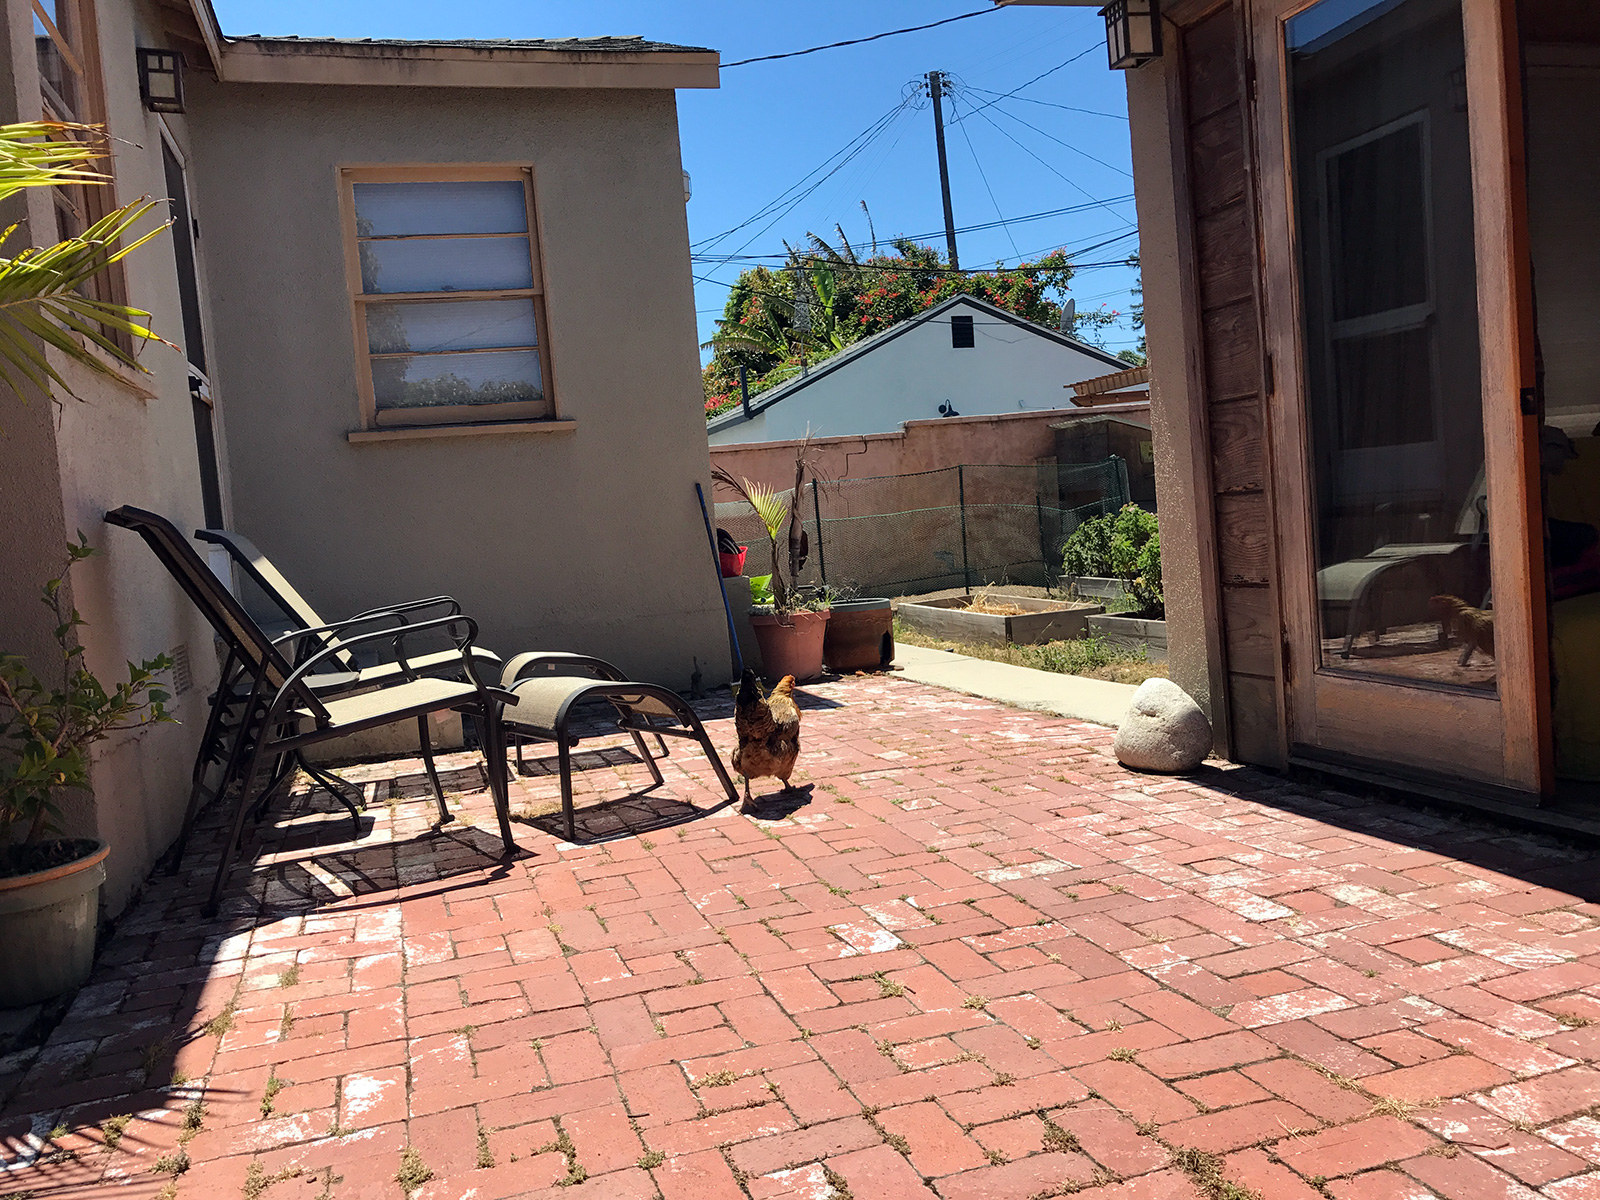 Airbnb in Venice, CA by Jets Like Taxis